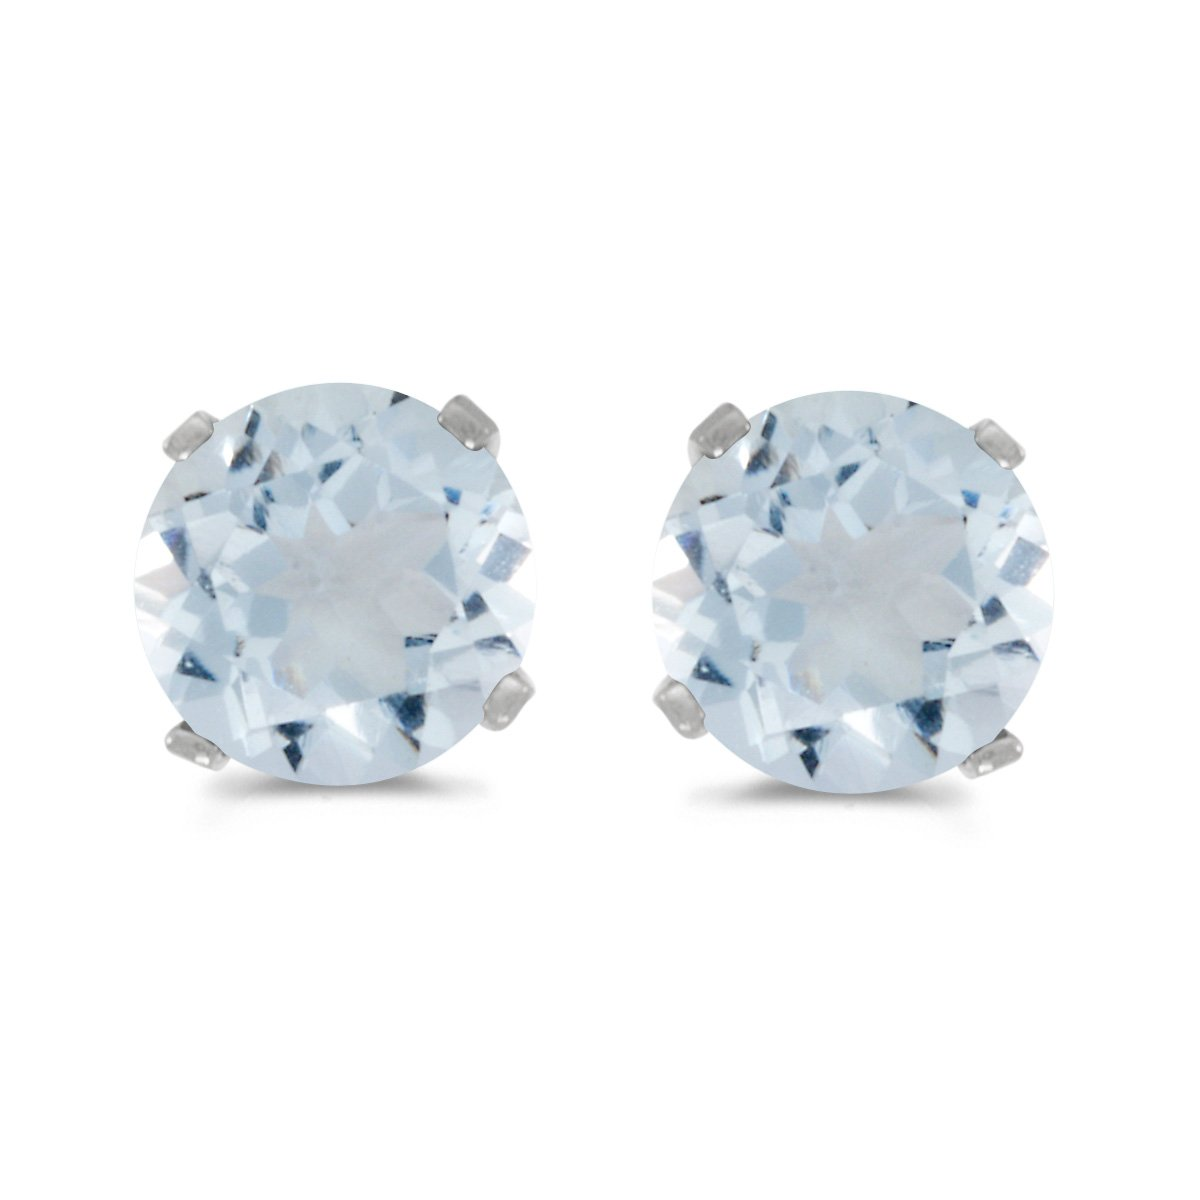 2d336e4f2 Amazon.com: 14k White Gold 5 mm Natural Round Aquamarine Stud Earrings:  March Birthstone Earrings: Jewelry